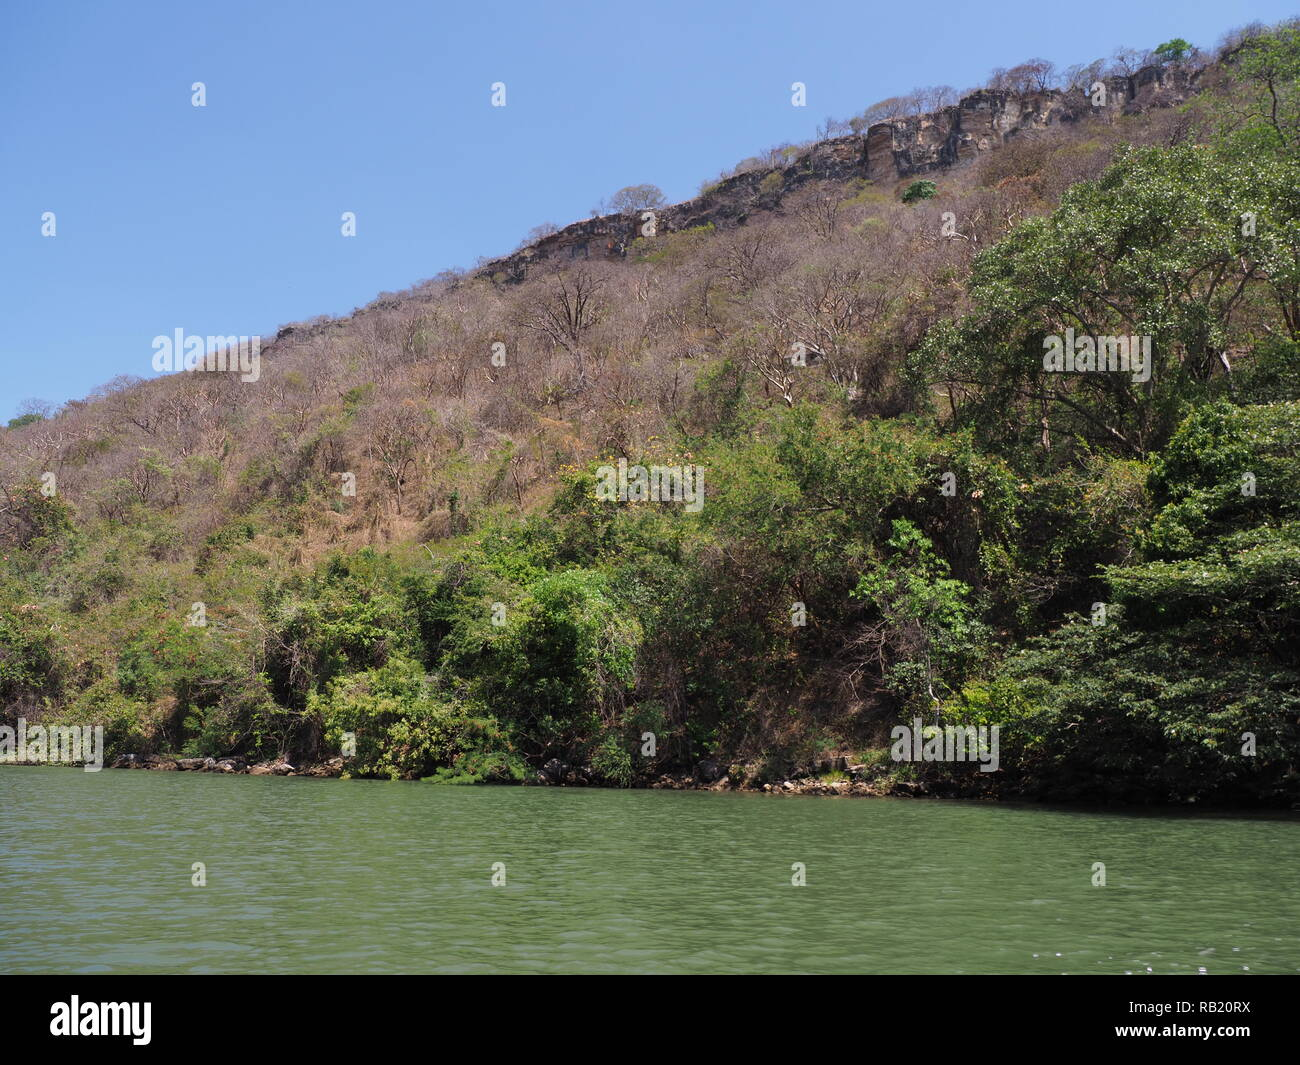 Scenic slope of Sumidero canyon at Grijalva river landscape in Chiapas state in Mexico - Stock Image